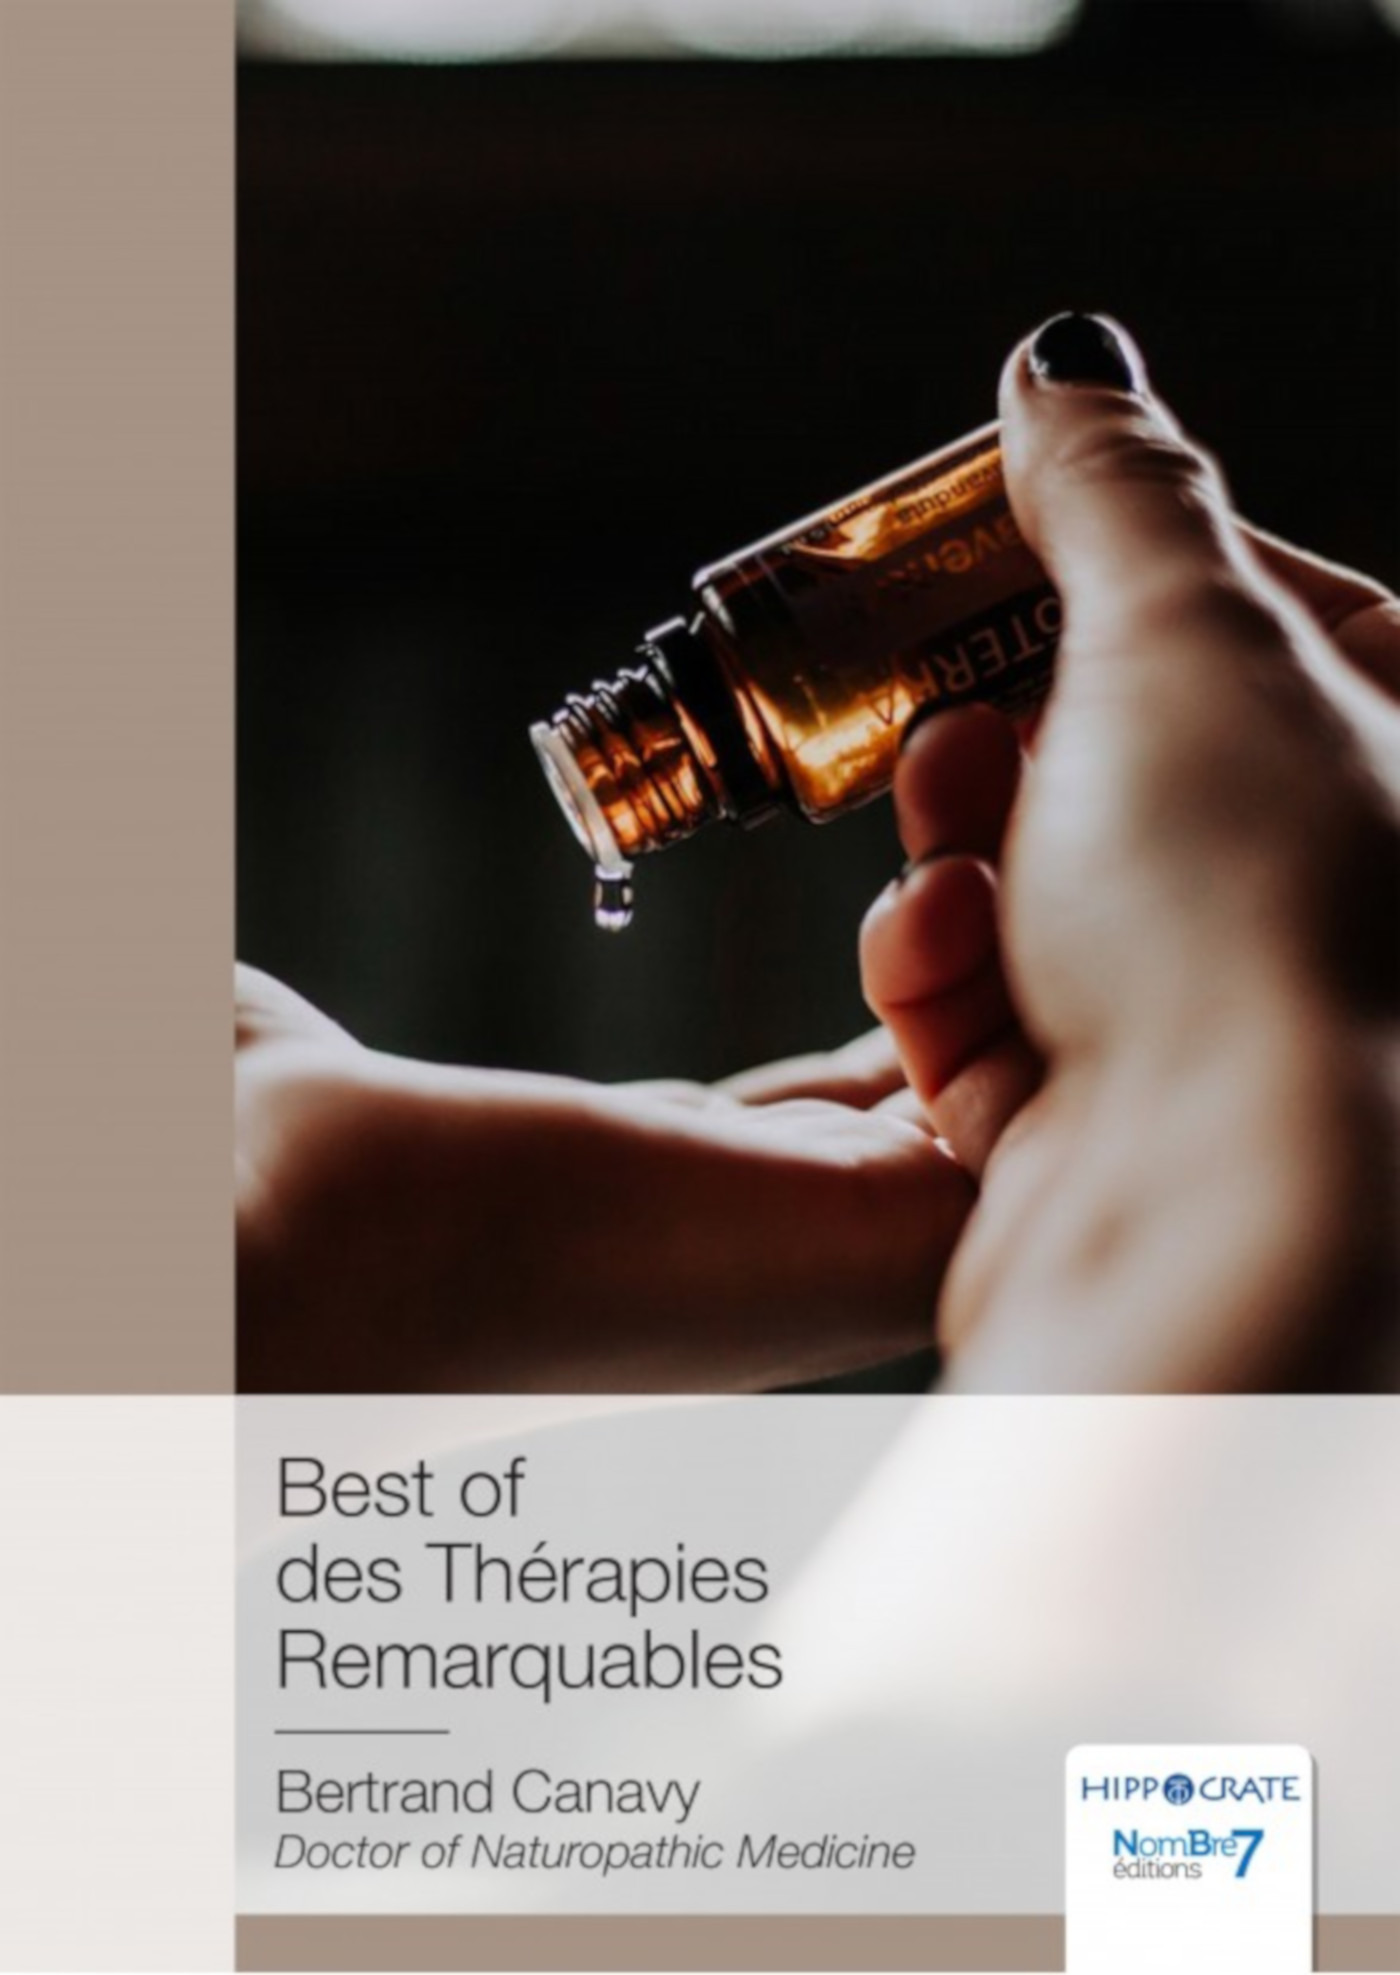 Best of des therapies remarquables